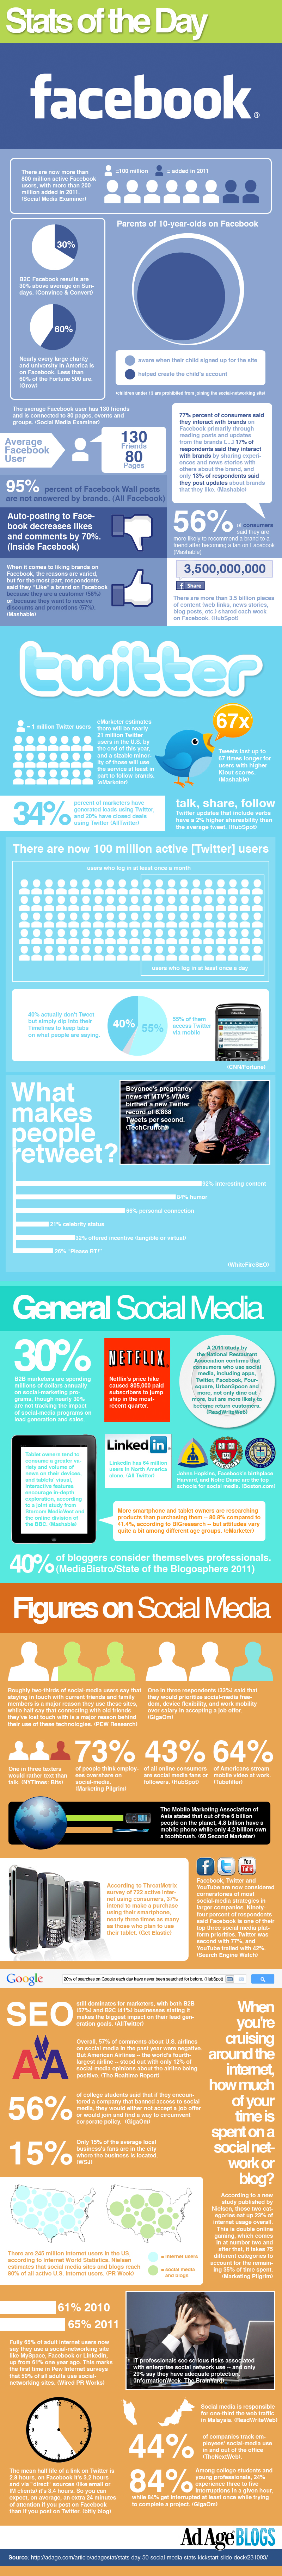 Social Media Stats of the Day infographic